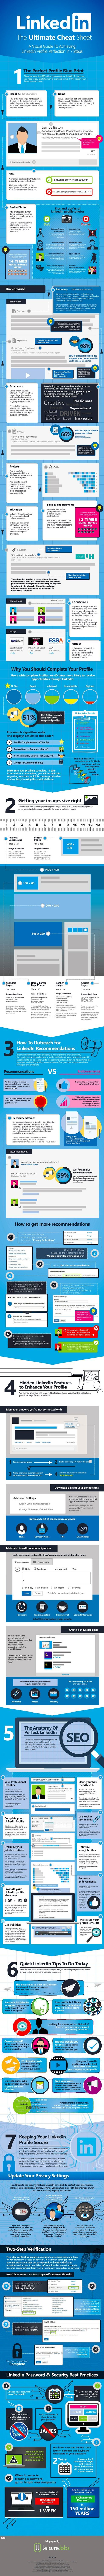 How to Craft the Perfect LinkedIn Profile: A Comprehensive Guide #Infographic